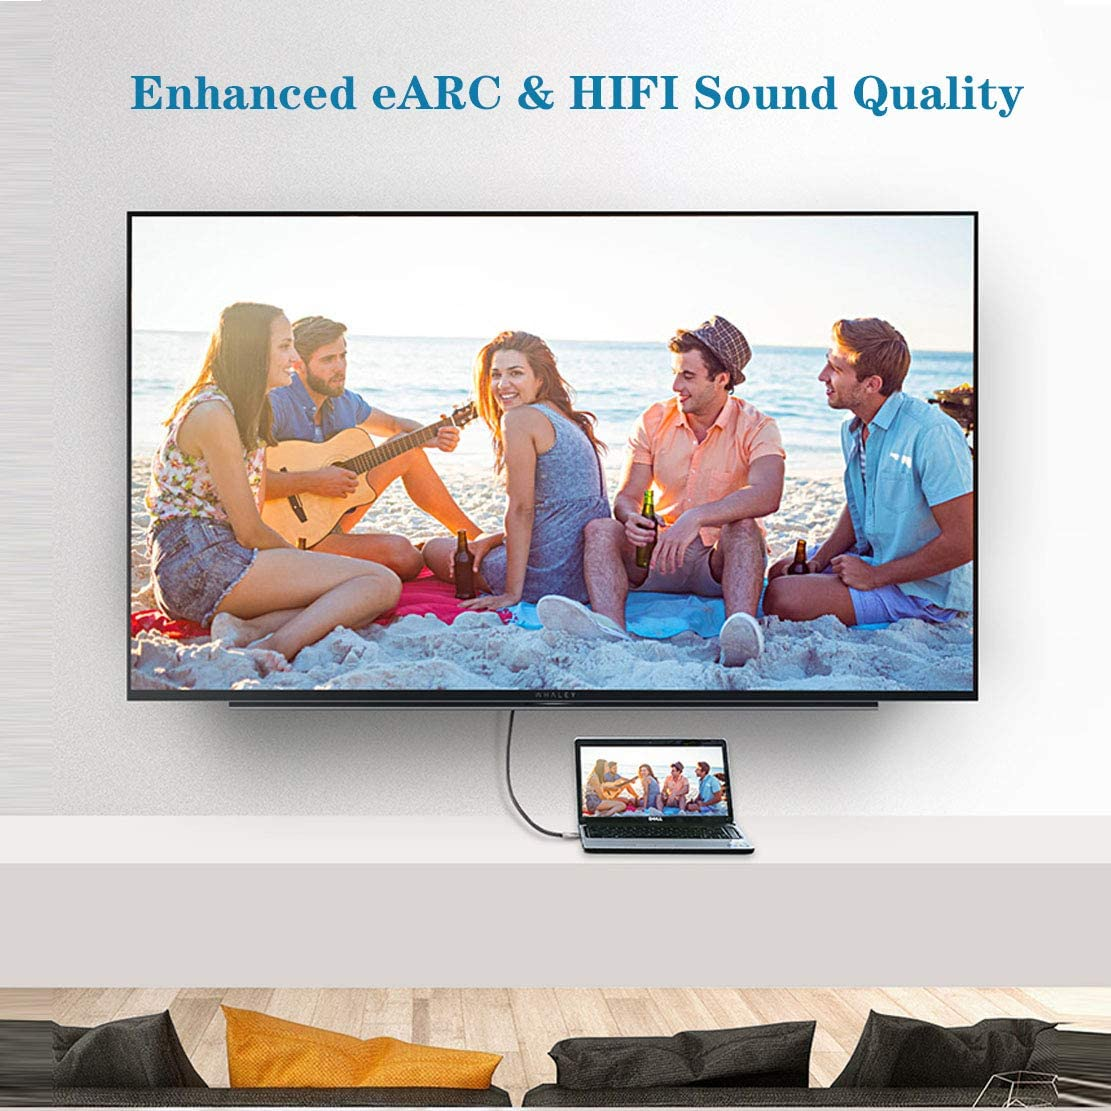 New 8K HDMI Cable with Braided Cord 6.6ft HDMI 2.1 Cable Ultra High Speed HD 48Gbps Cable 8K(7680x4320)@60Hz, 4K@120Hz Compatible with Samsung QLED TV, Roku Netflix PS4, Sony LG etc